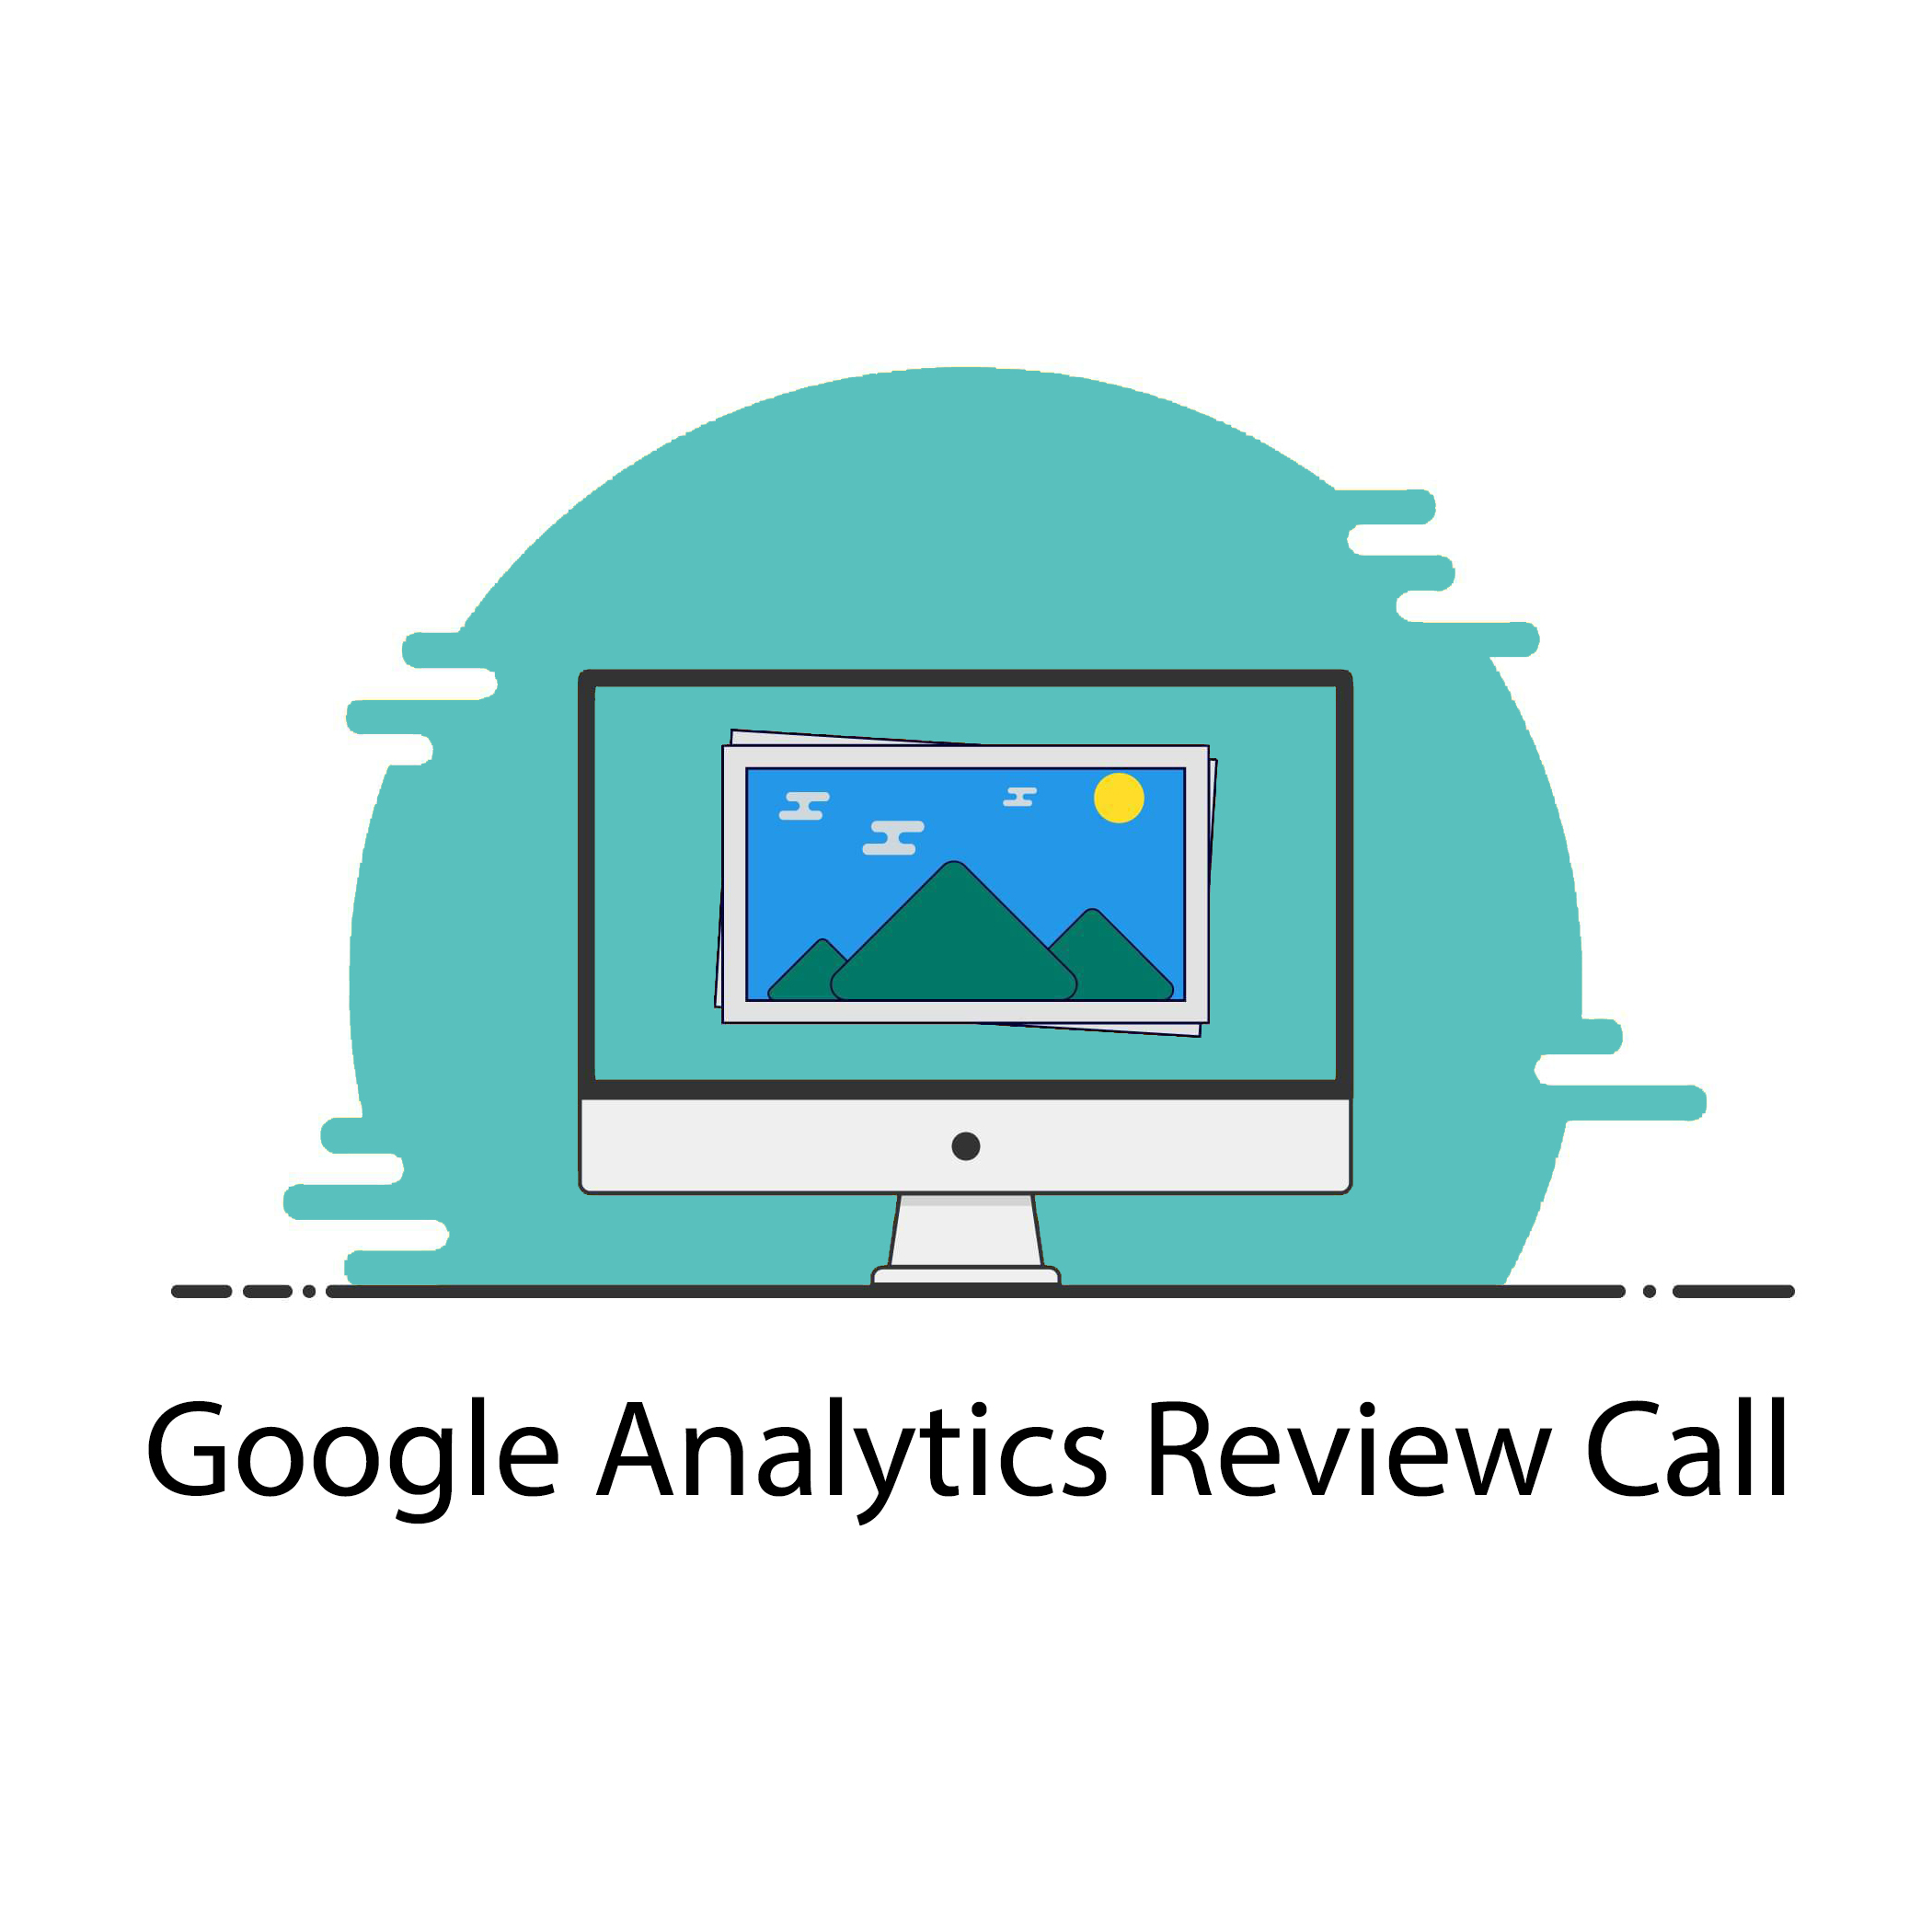 MSB-TST-Google Analytics Review Call-Teal